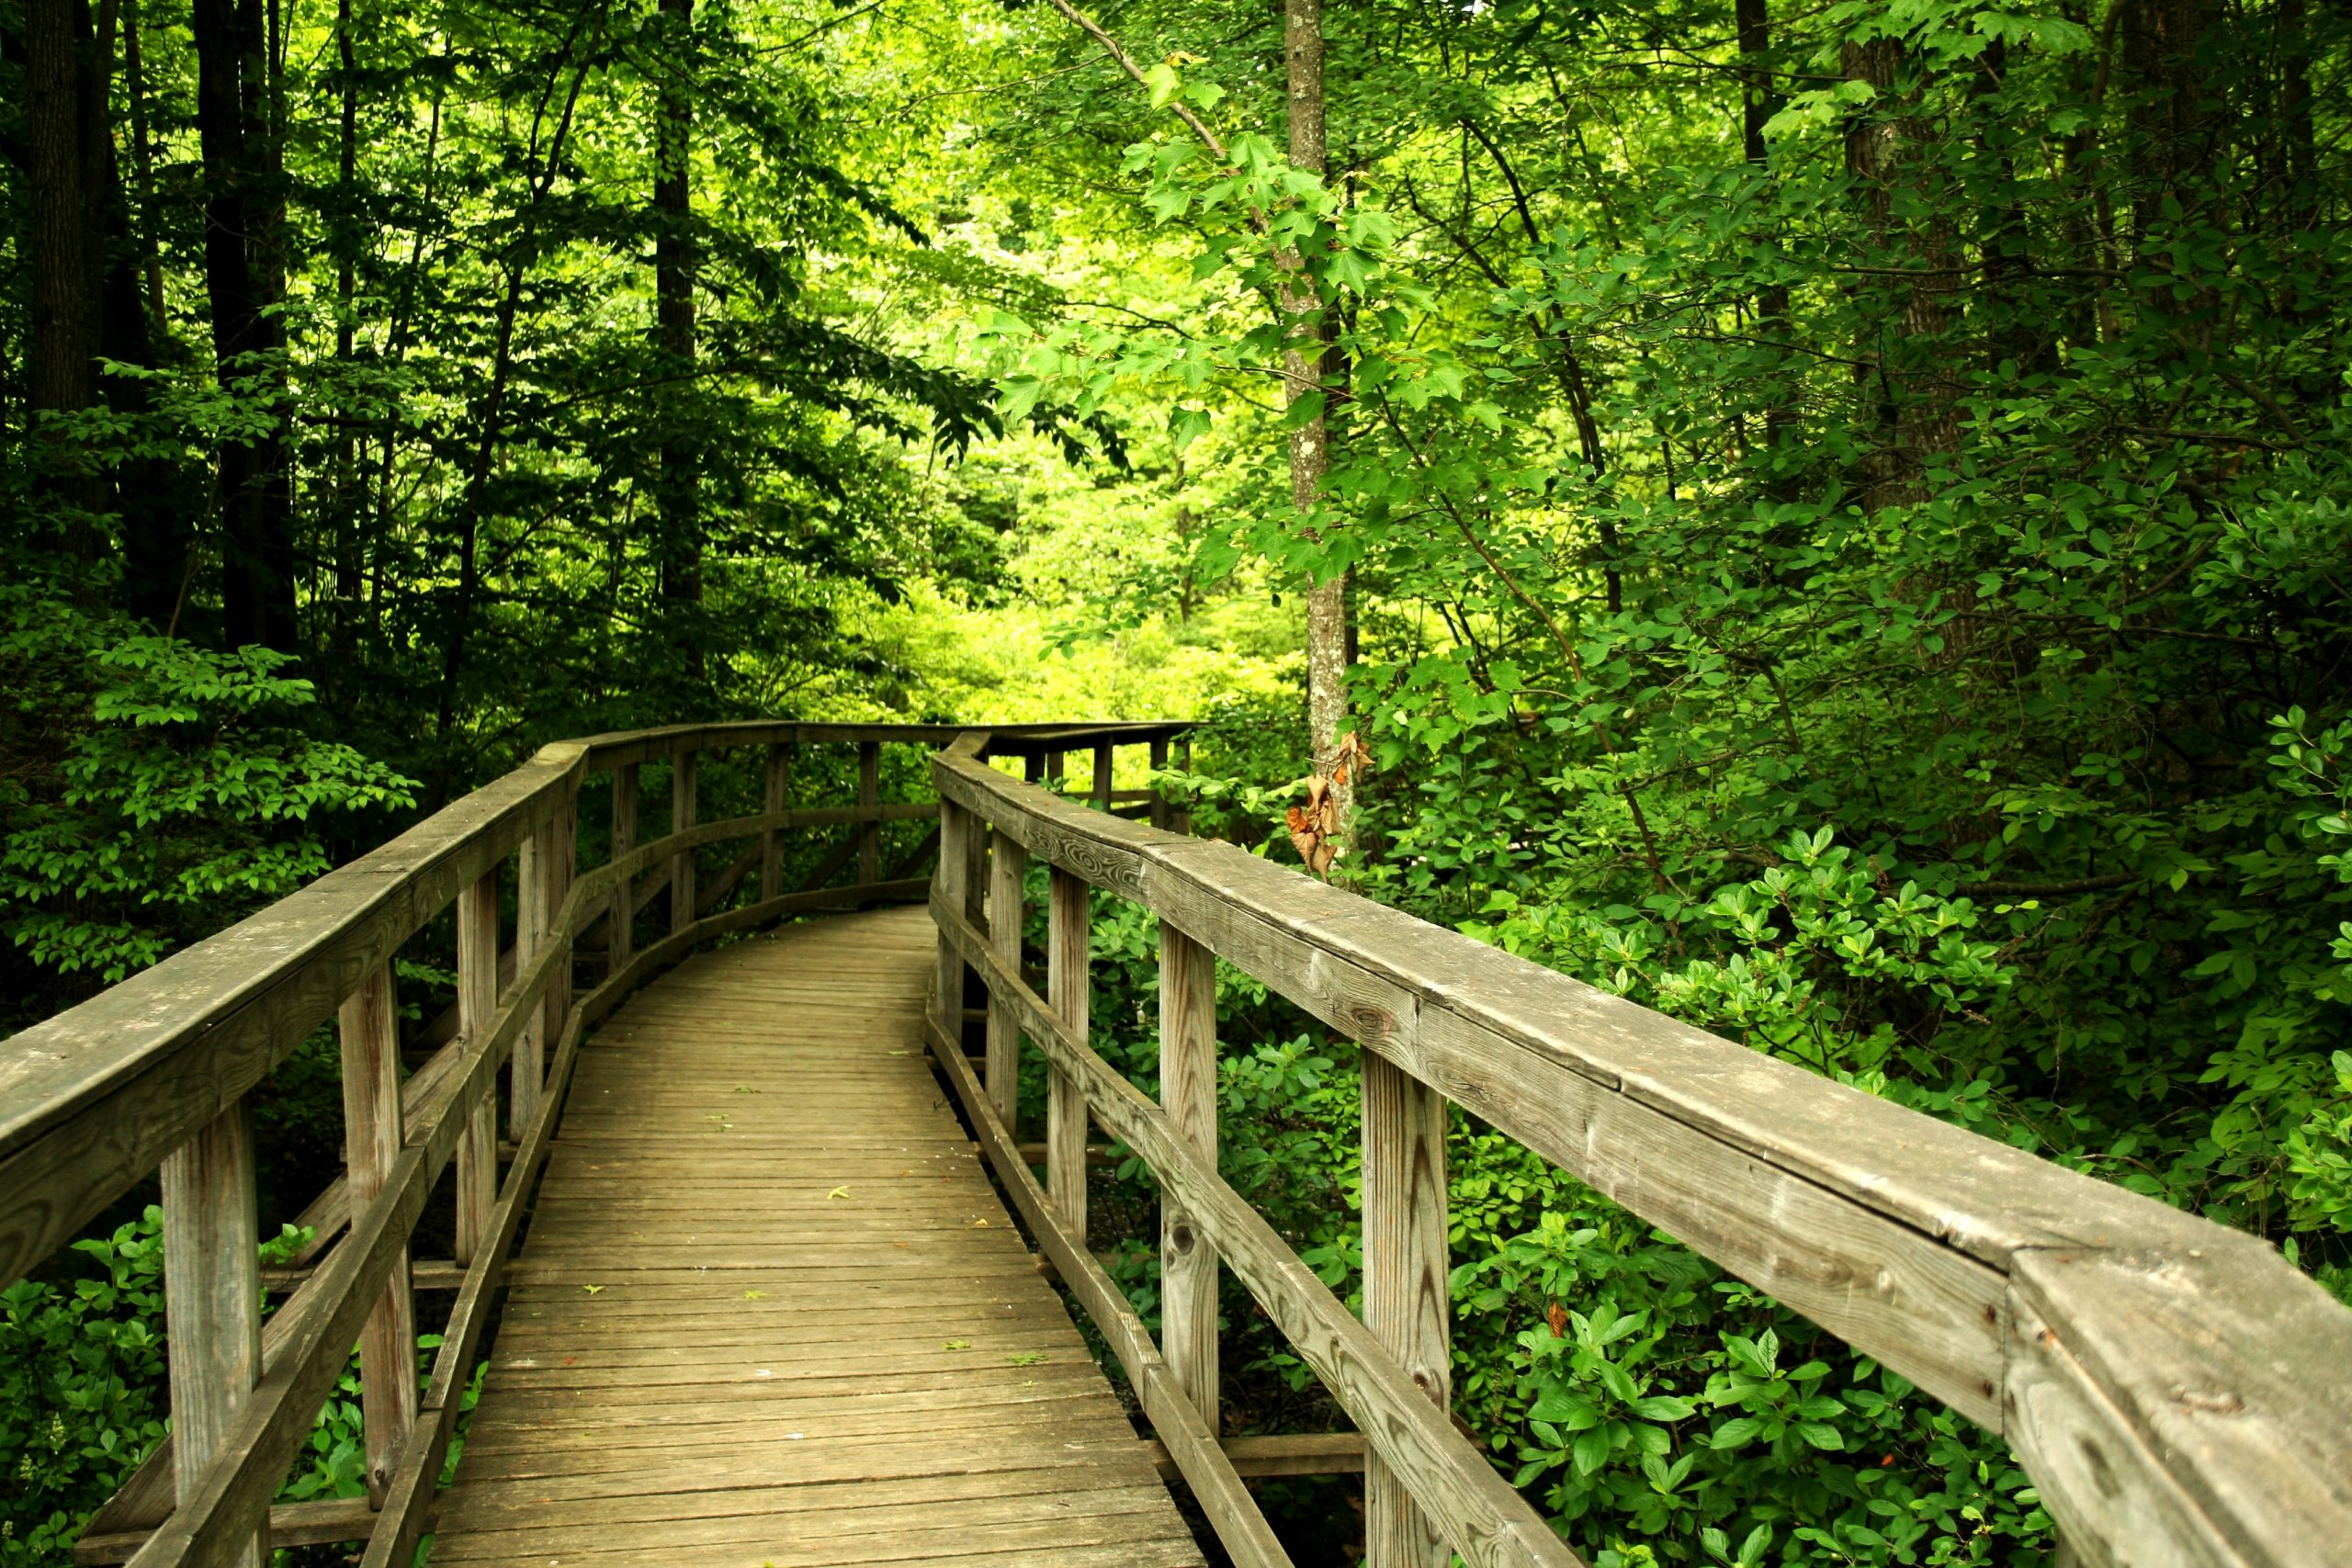 outdoor trail in state park living in douglasville puts you near beatiful nature